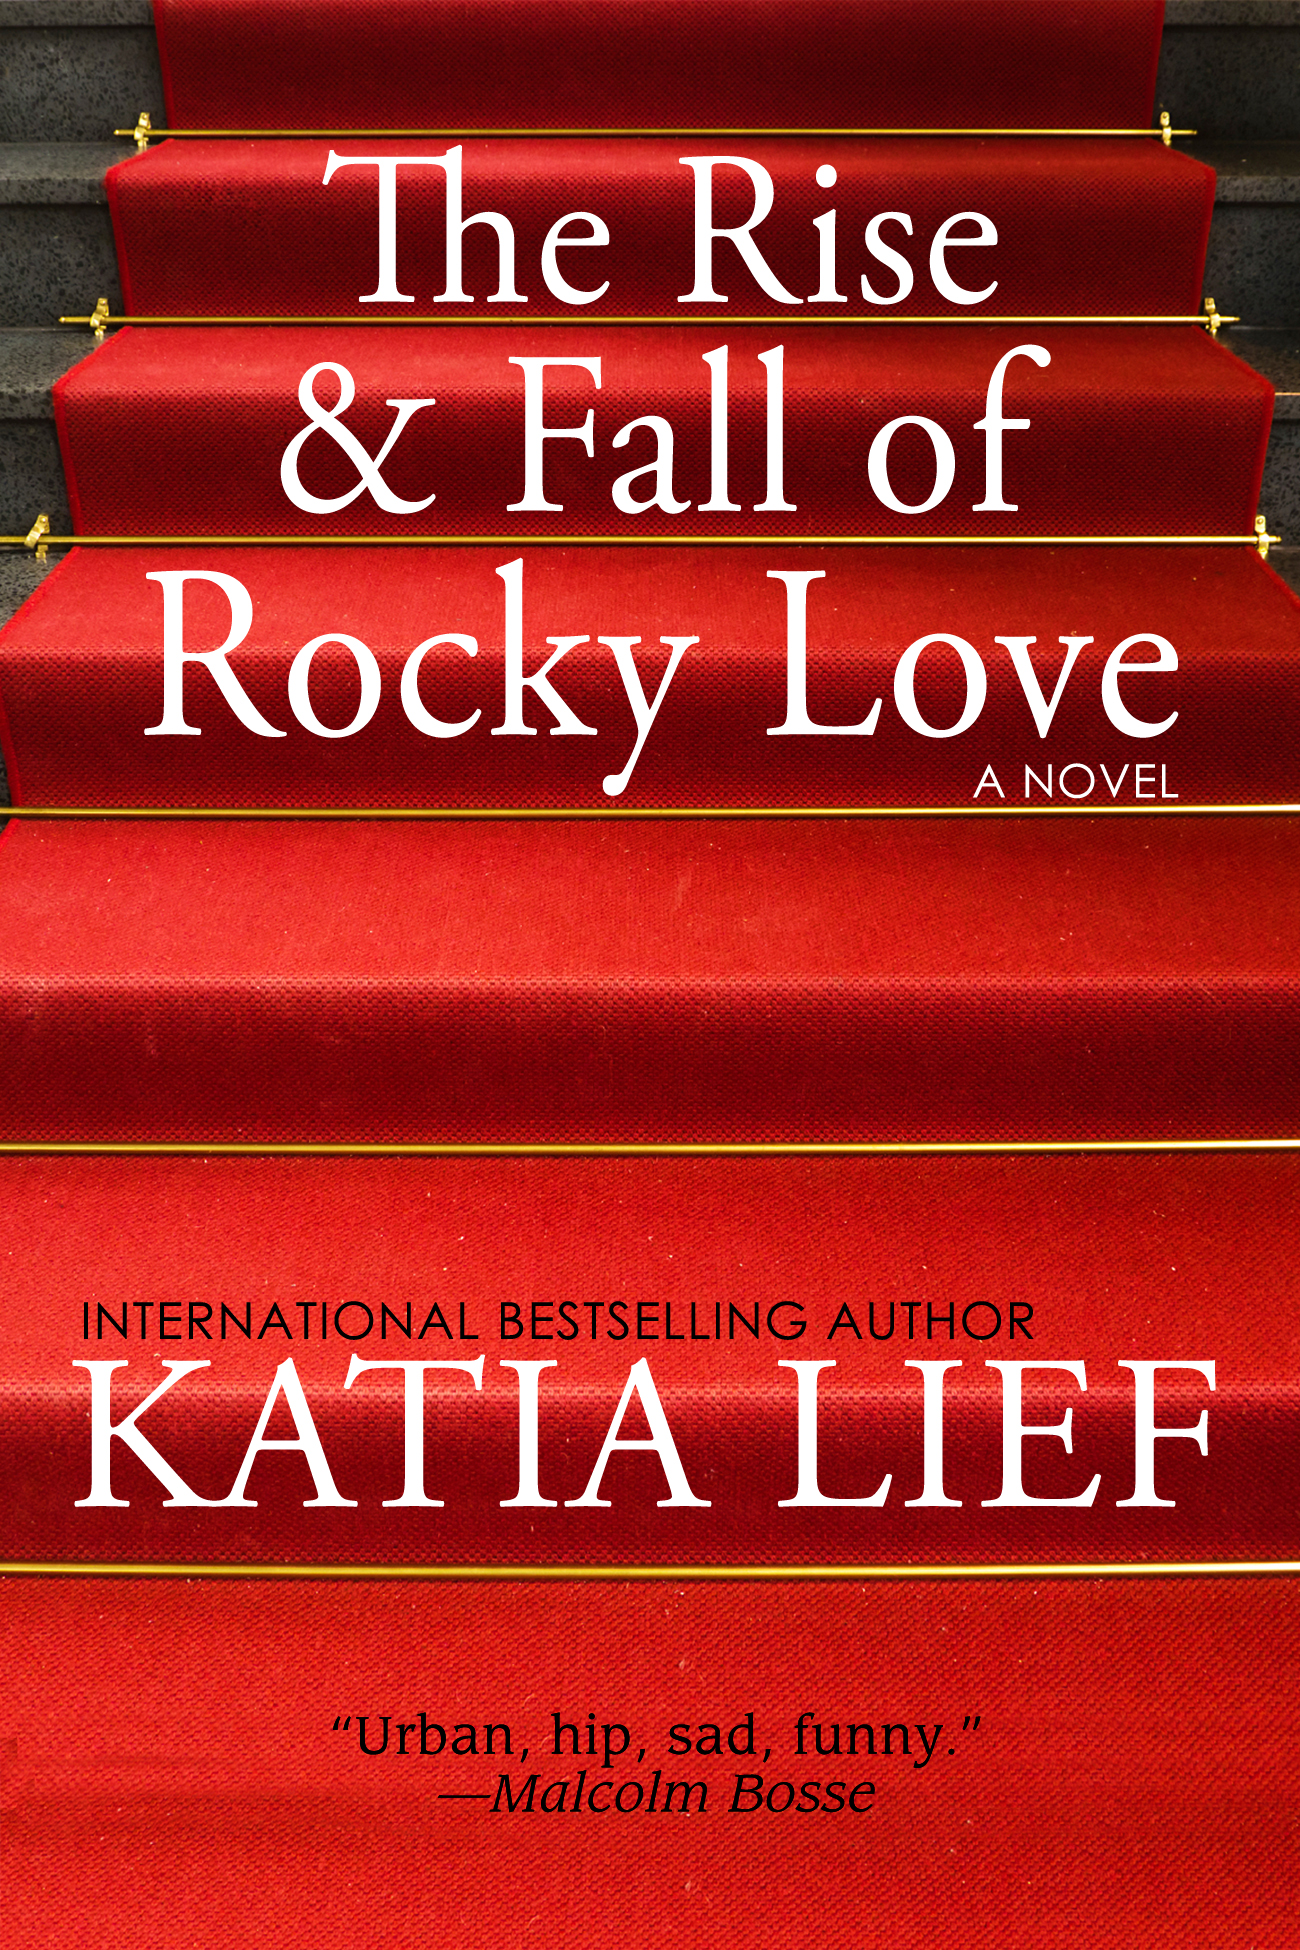 - When aspiring cartoonist Cat Gold goes to work as a celebrity assistant for Rocky Love, a has-been radio and television star, the lives of two strong women collide. Cat learns how to be ruthless from the best of them, as scandalous revelations accelerate Rocky's downfall.Learn More